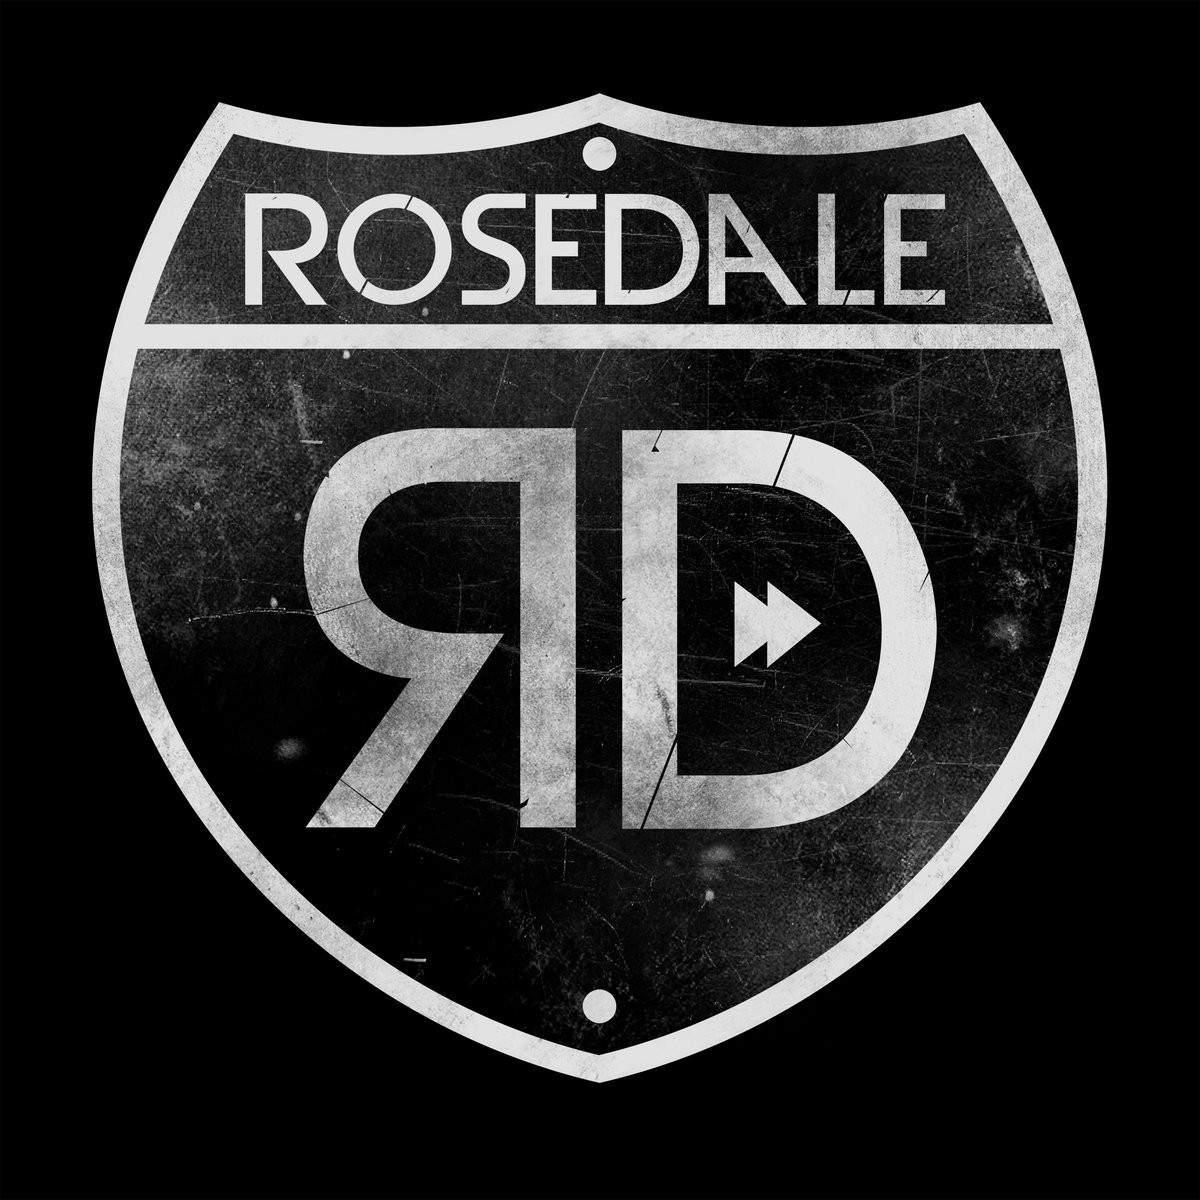 Rosedale After Hours Mustrd In My Head No Plug